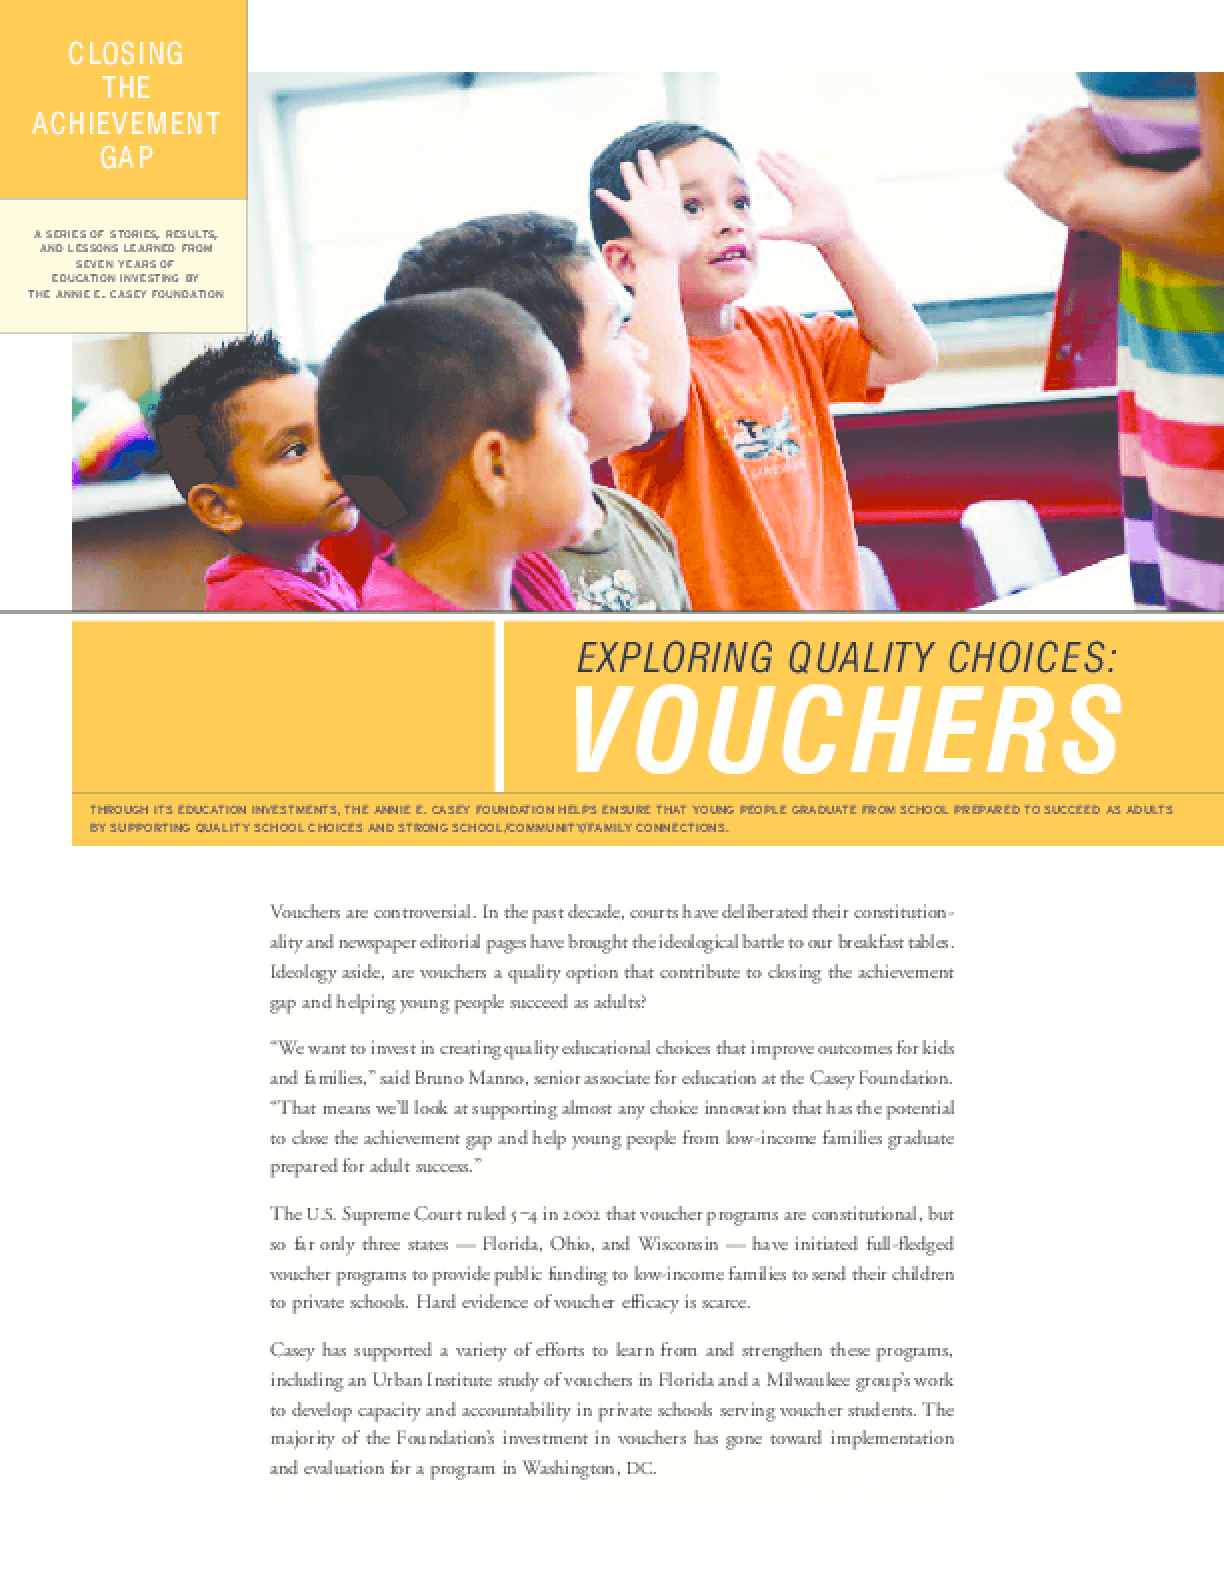 Closing the Achievement Gap: Creating Quality Choices: Vouchers